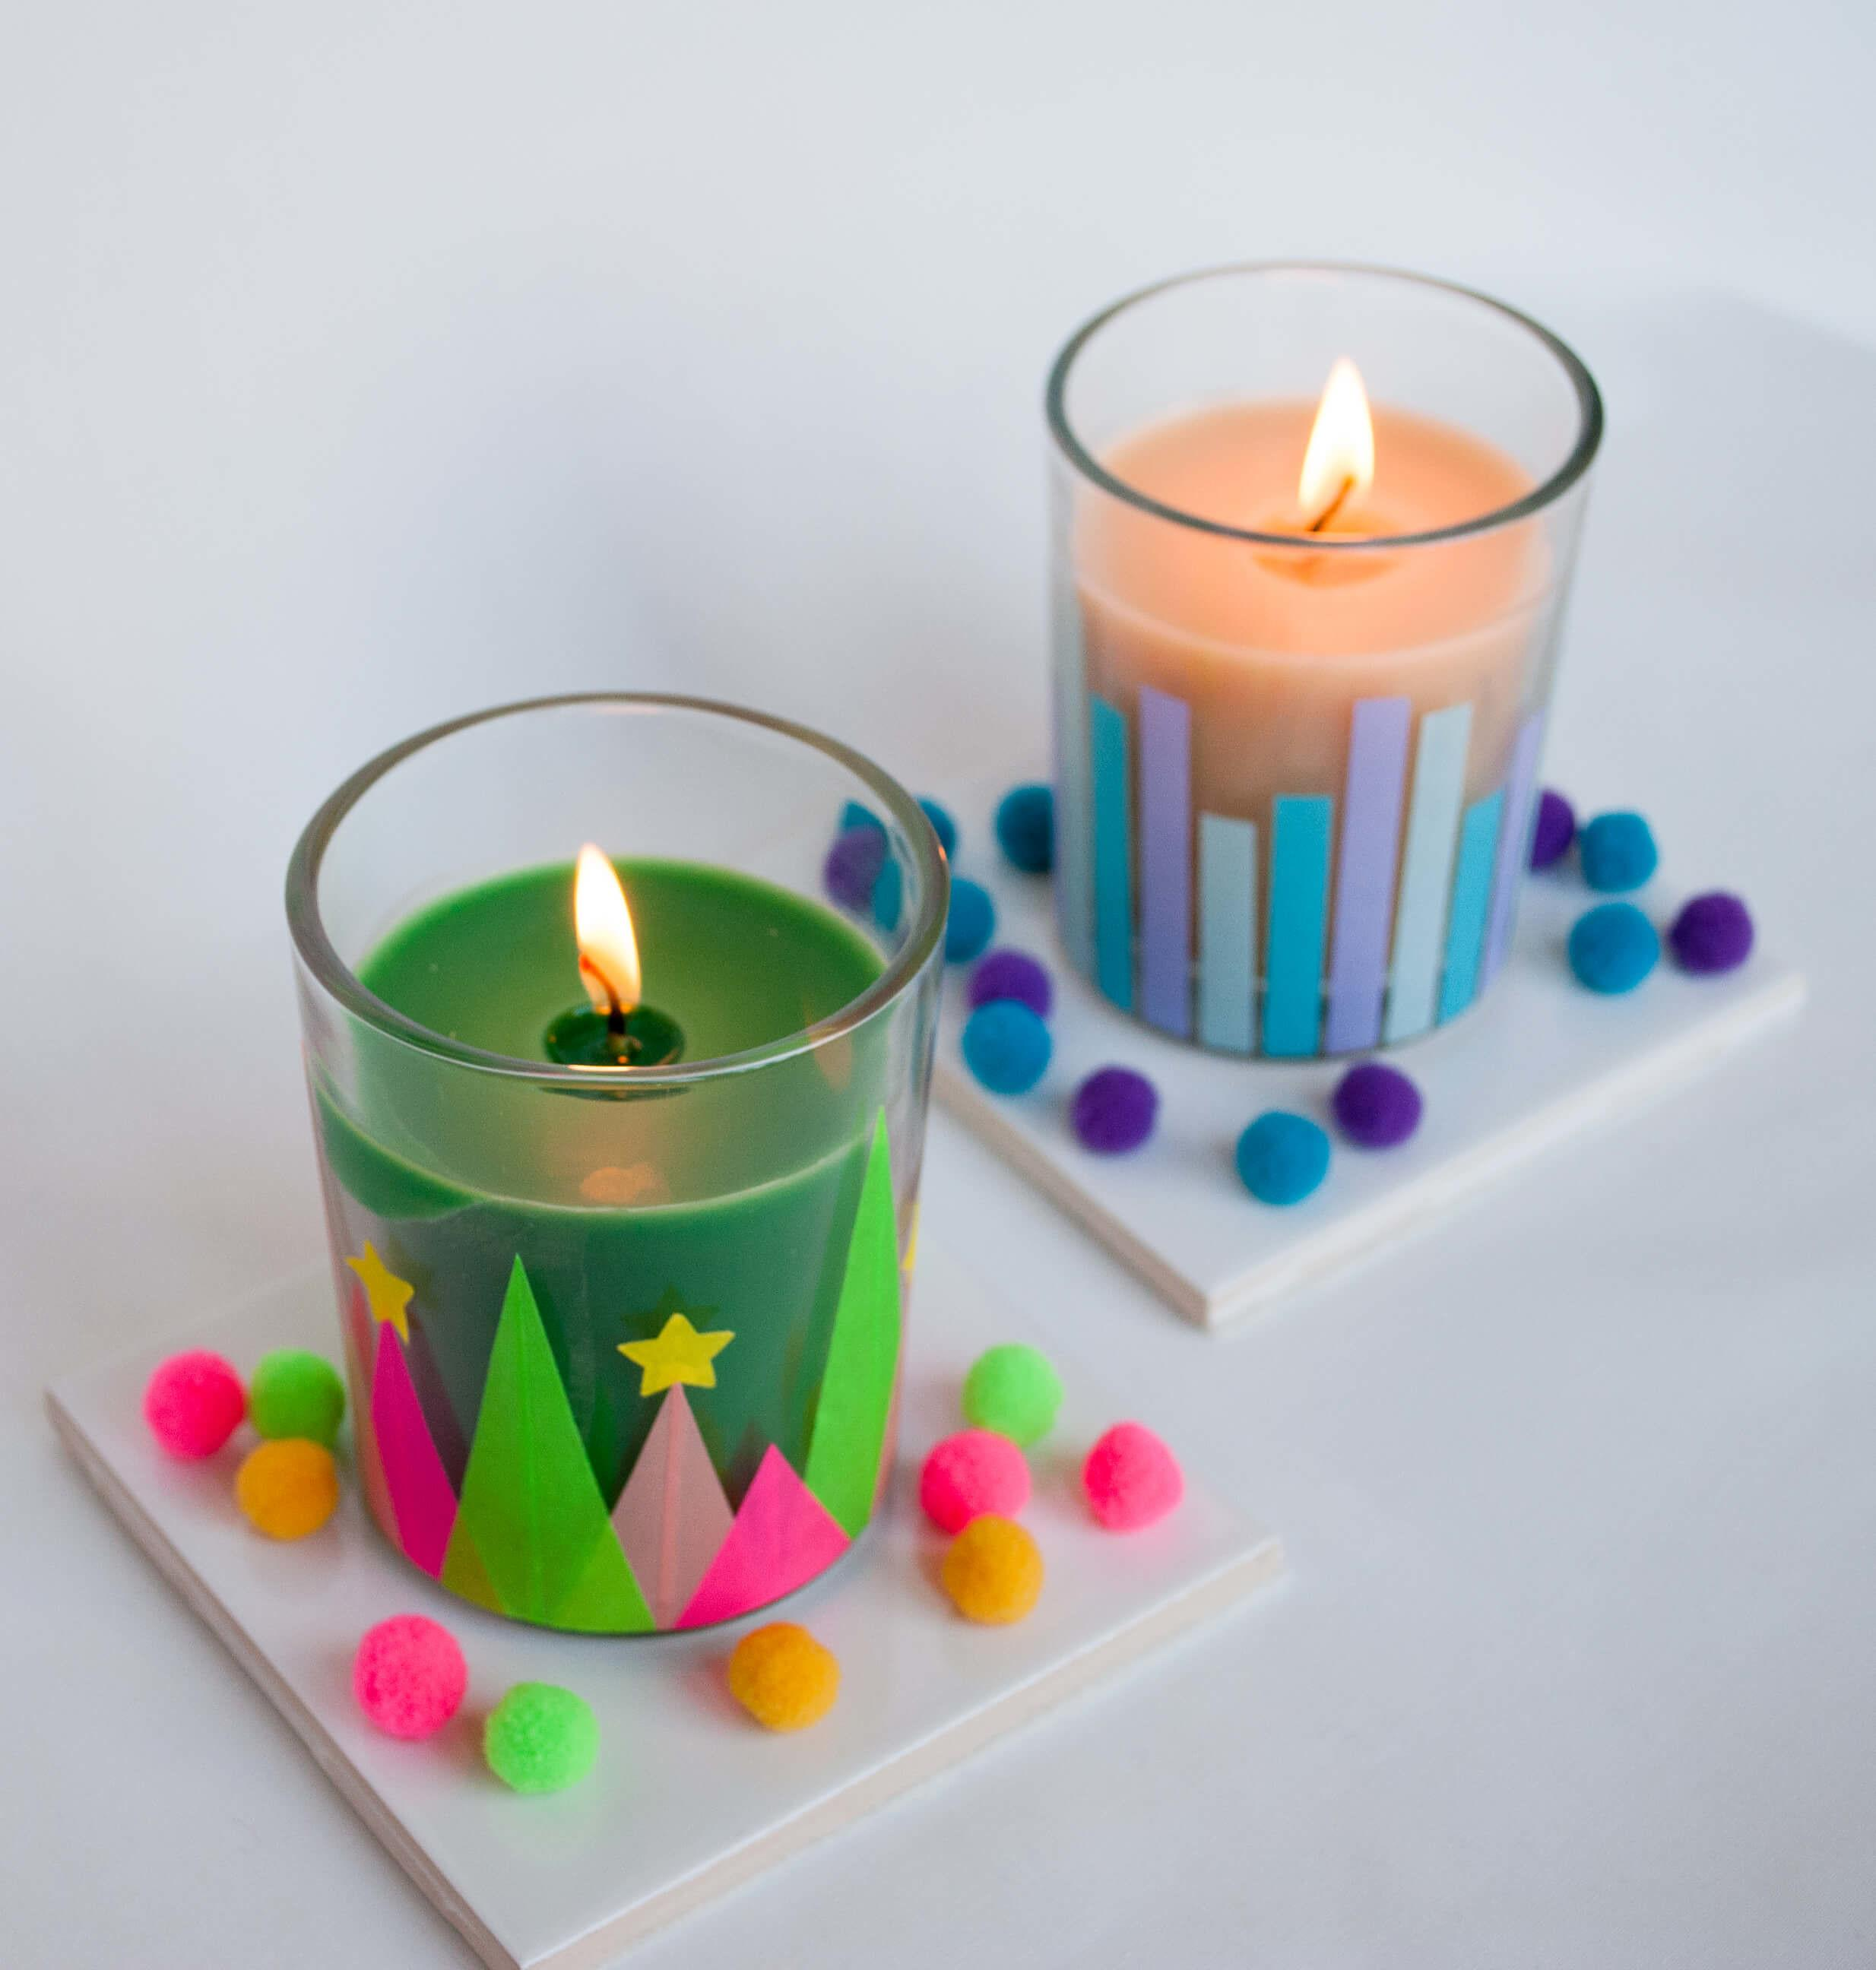 Easy Modern Whimsical Holiday Candles Diy Merriment